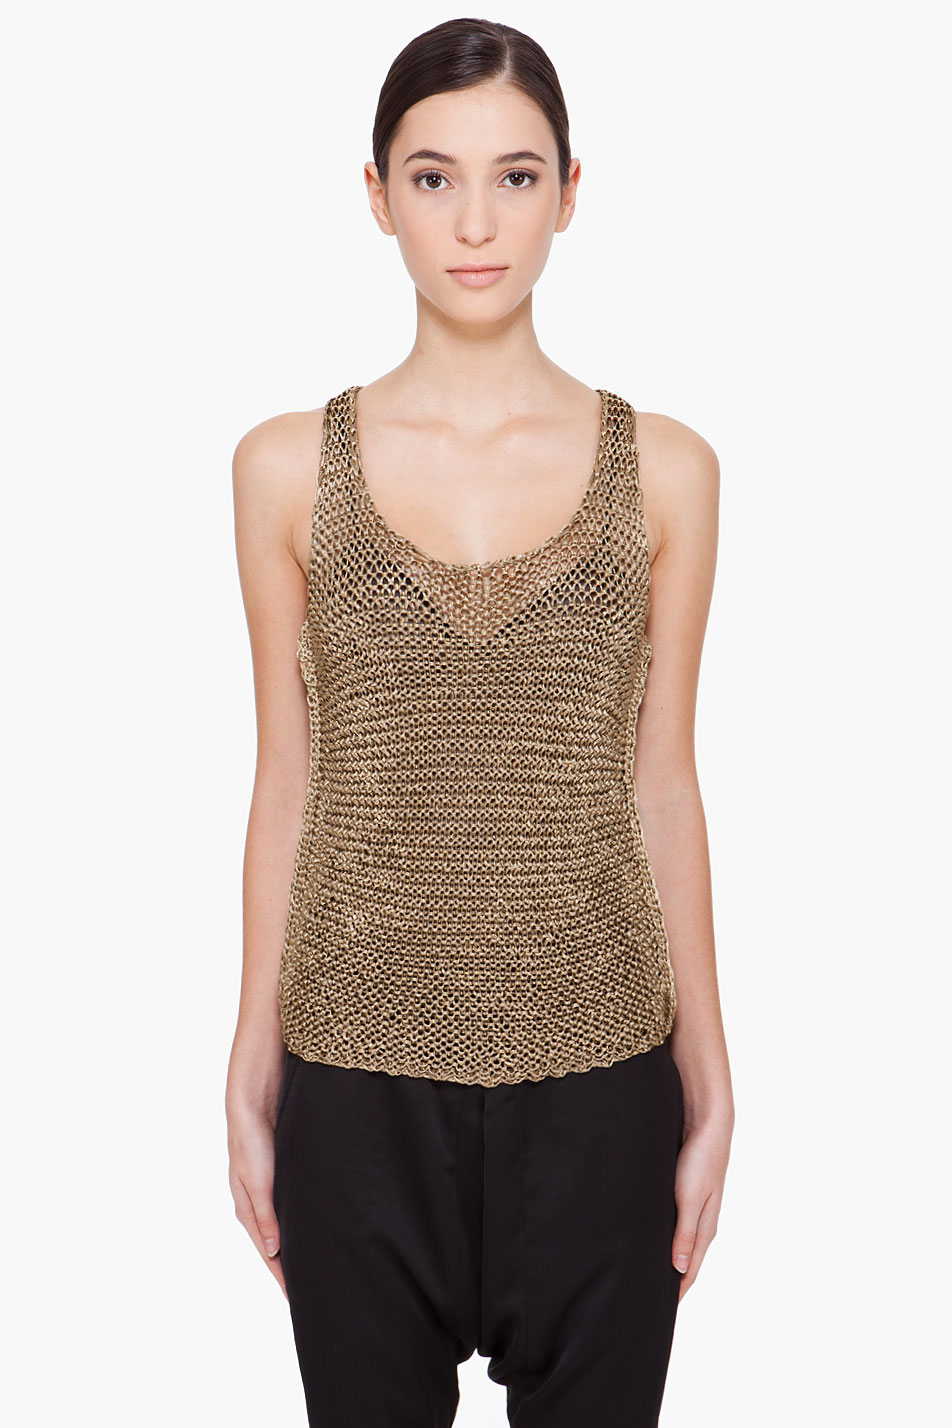 Metallic Tank Top - results from brands Unique Bargains, Thread Tank, Majestic, products like Mr Heater MH12C Heater/Cooker 8,, BTU/HR, Guess Metallic-Knit Tank Top - Yellow XS, Dyna Glo Delux TT15CDGP Delux Propane Powered BTU Single Burner Tank Top Silver.